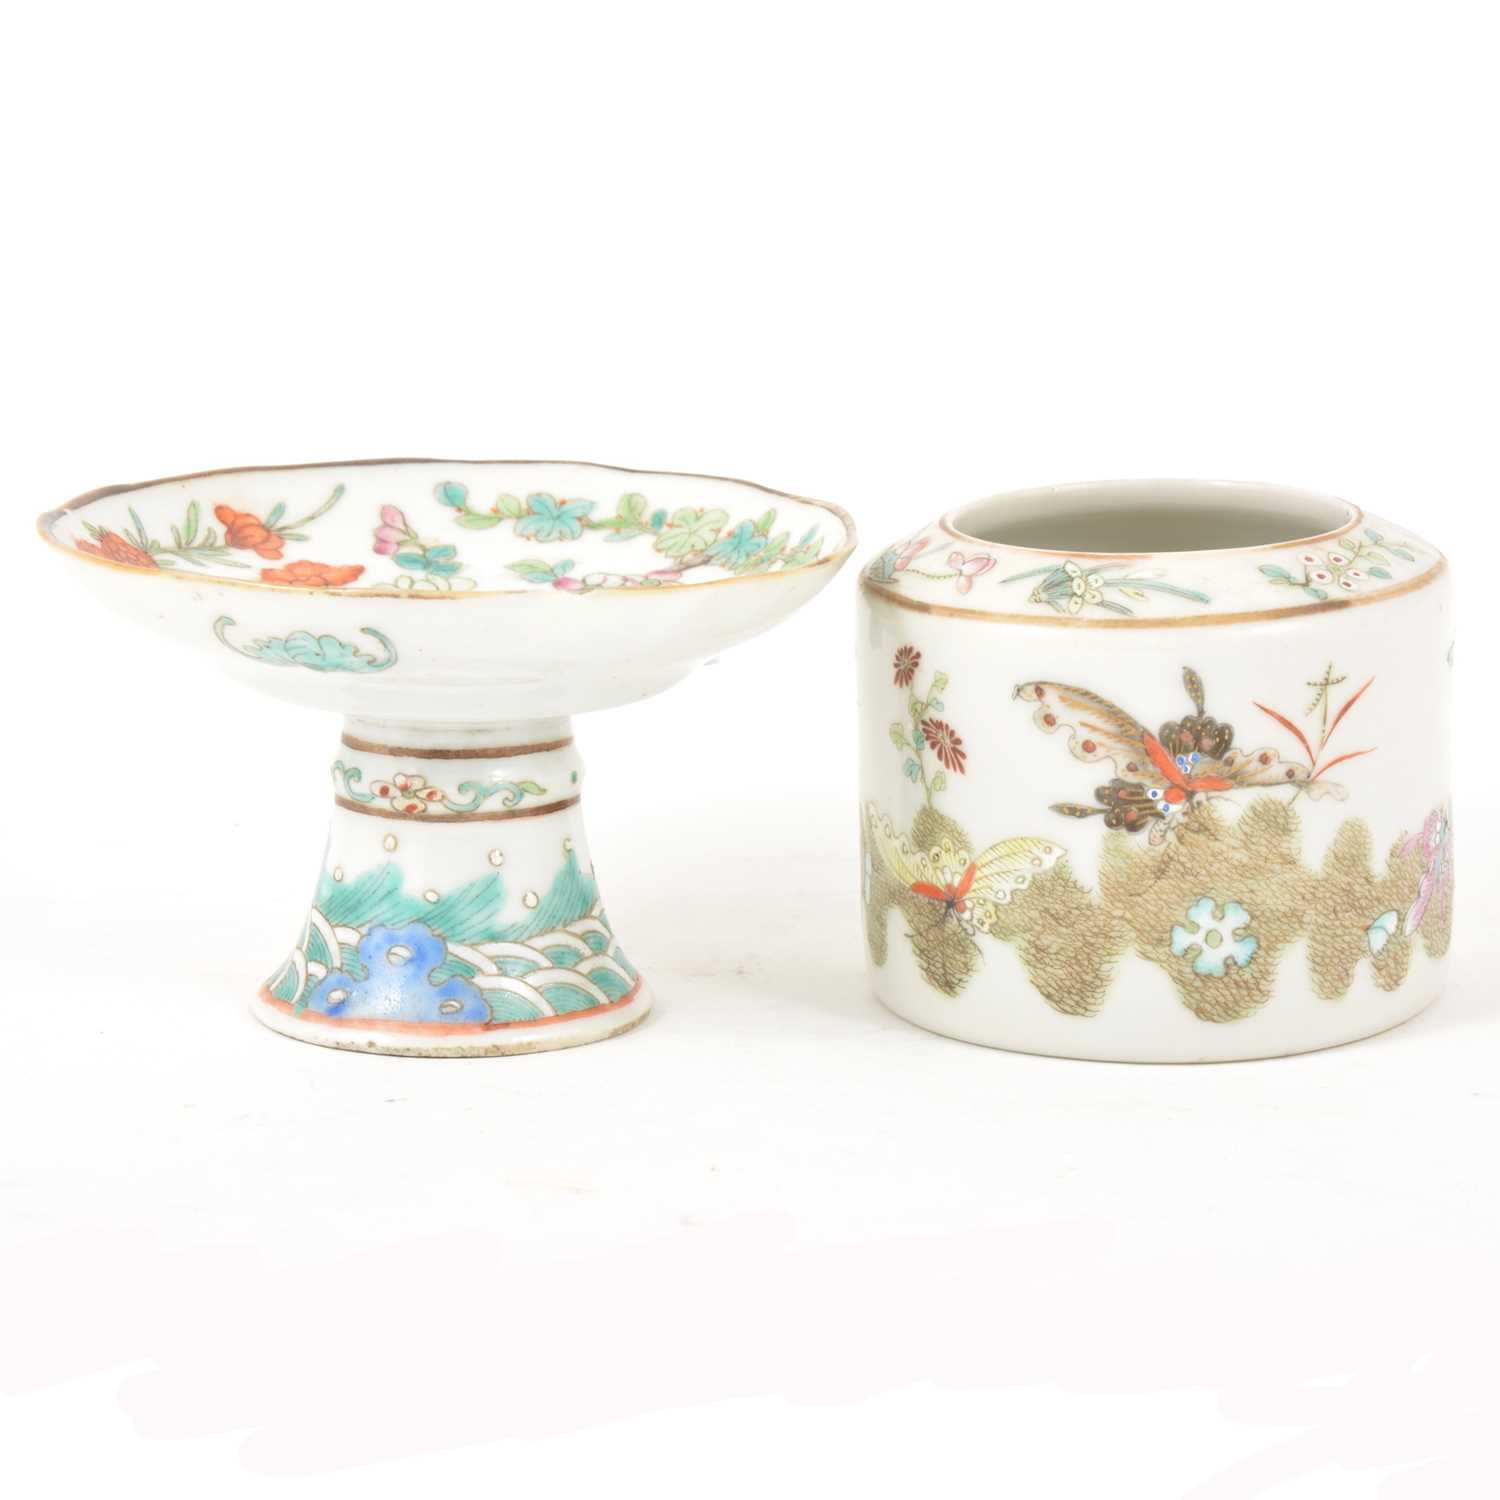 Lot 25-Chinese porcelain footed dish and a porcelain cylindrical jar